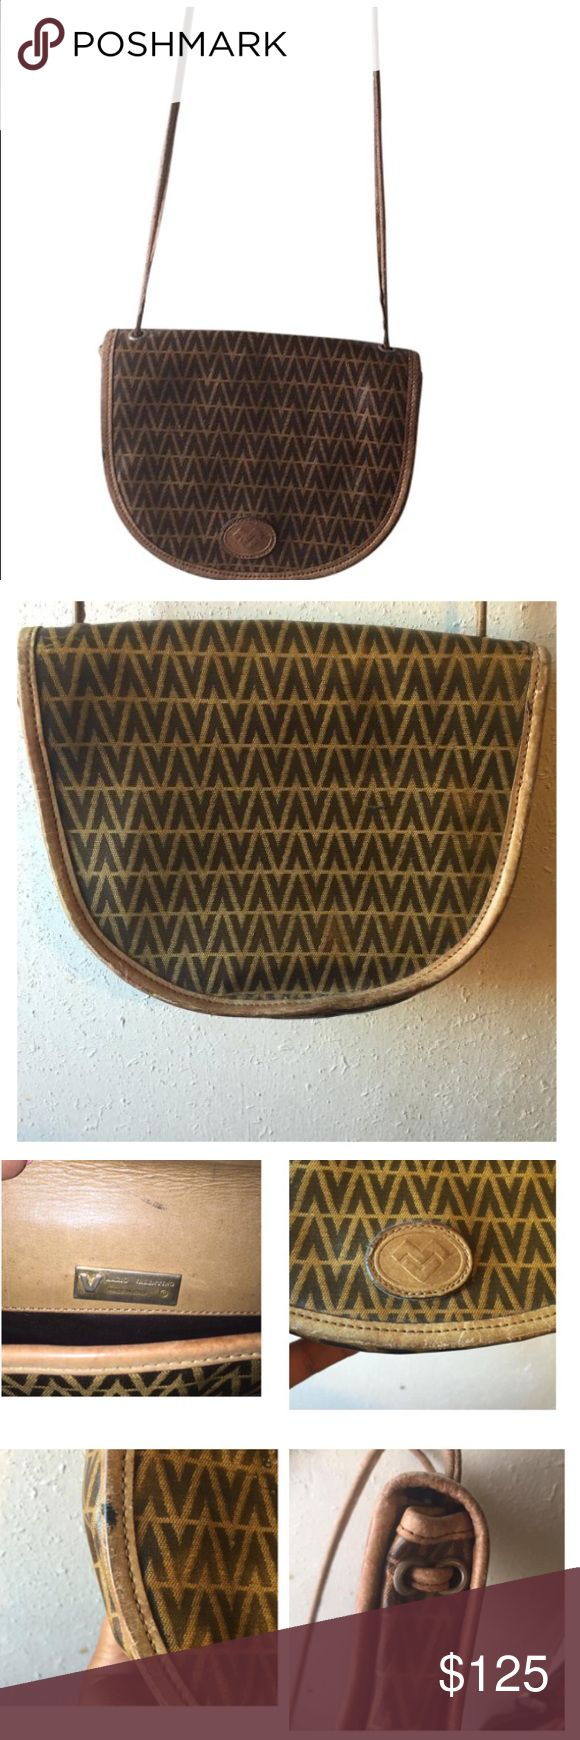 💥Vintage Valentino Monogram Small Crossbody💥 This is a lovely small Valentino Crossbody. It's vintage, don't know the exact year. Used to belong to my mom. Does have a small ink stain ( see photo ) Selling due to financial reasons. Feel free to ask me questions as all my sales are final, I need the money for bills. Thanks for watching. ! Please make me offers. Valentino Bags Crossbody Bags